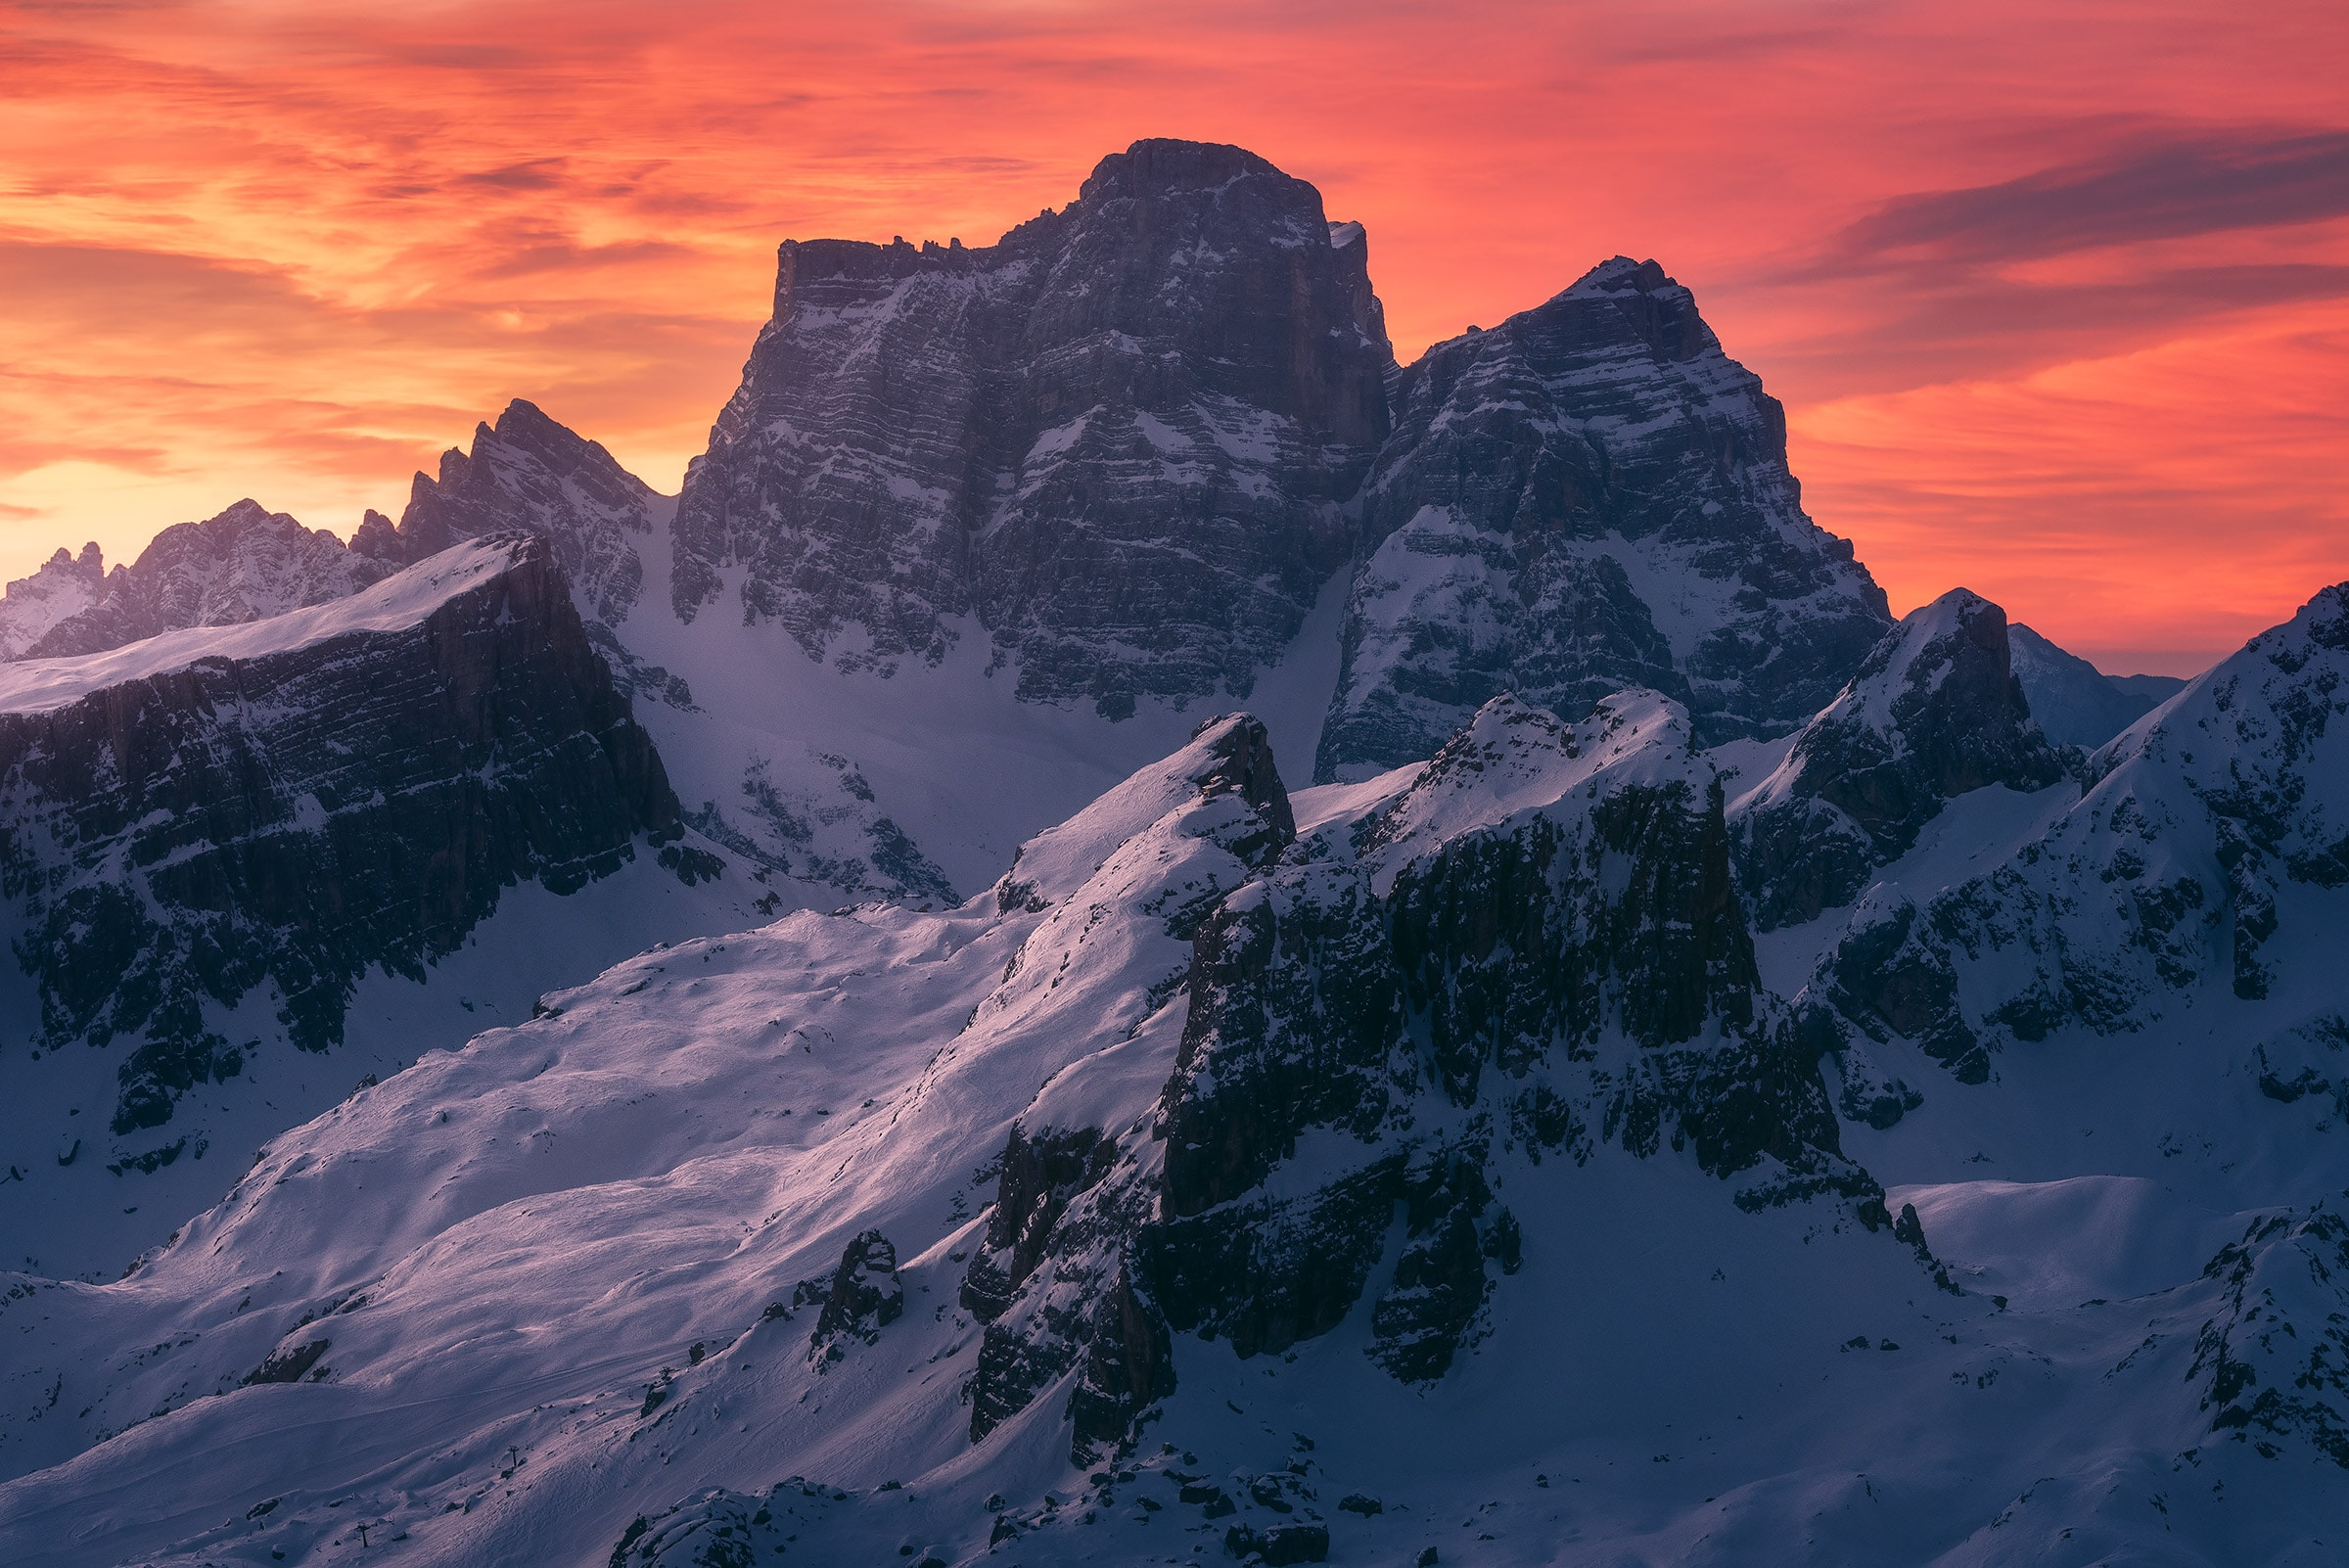 Dolomites winter photo workshop